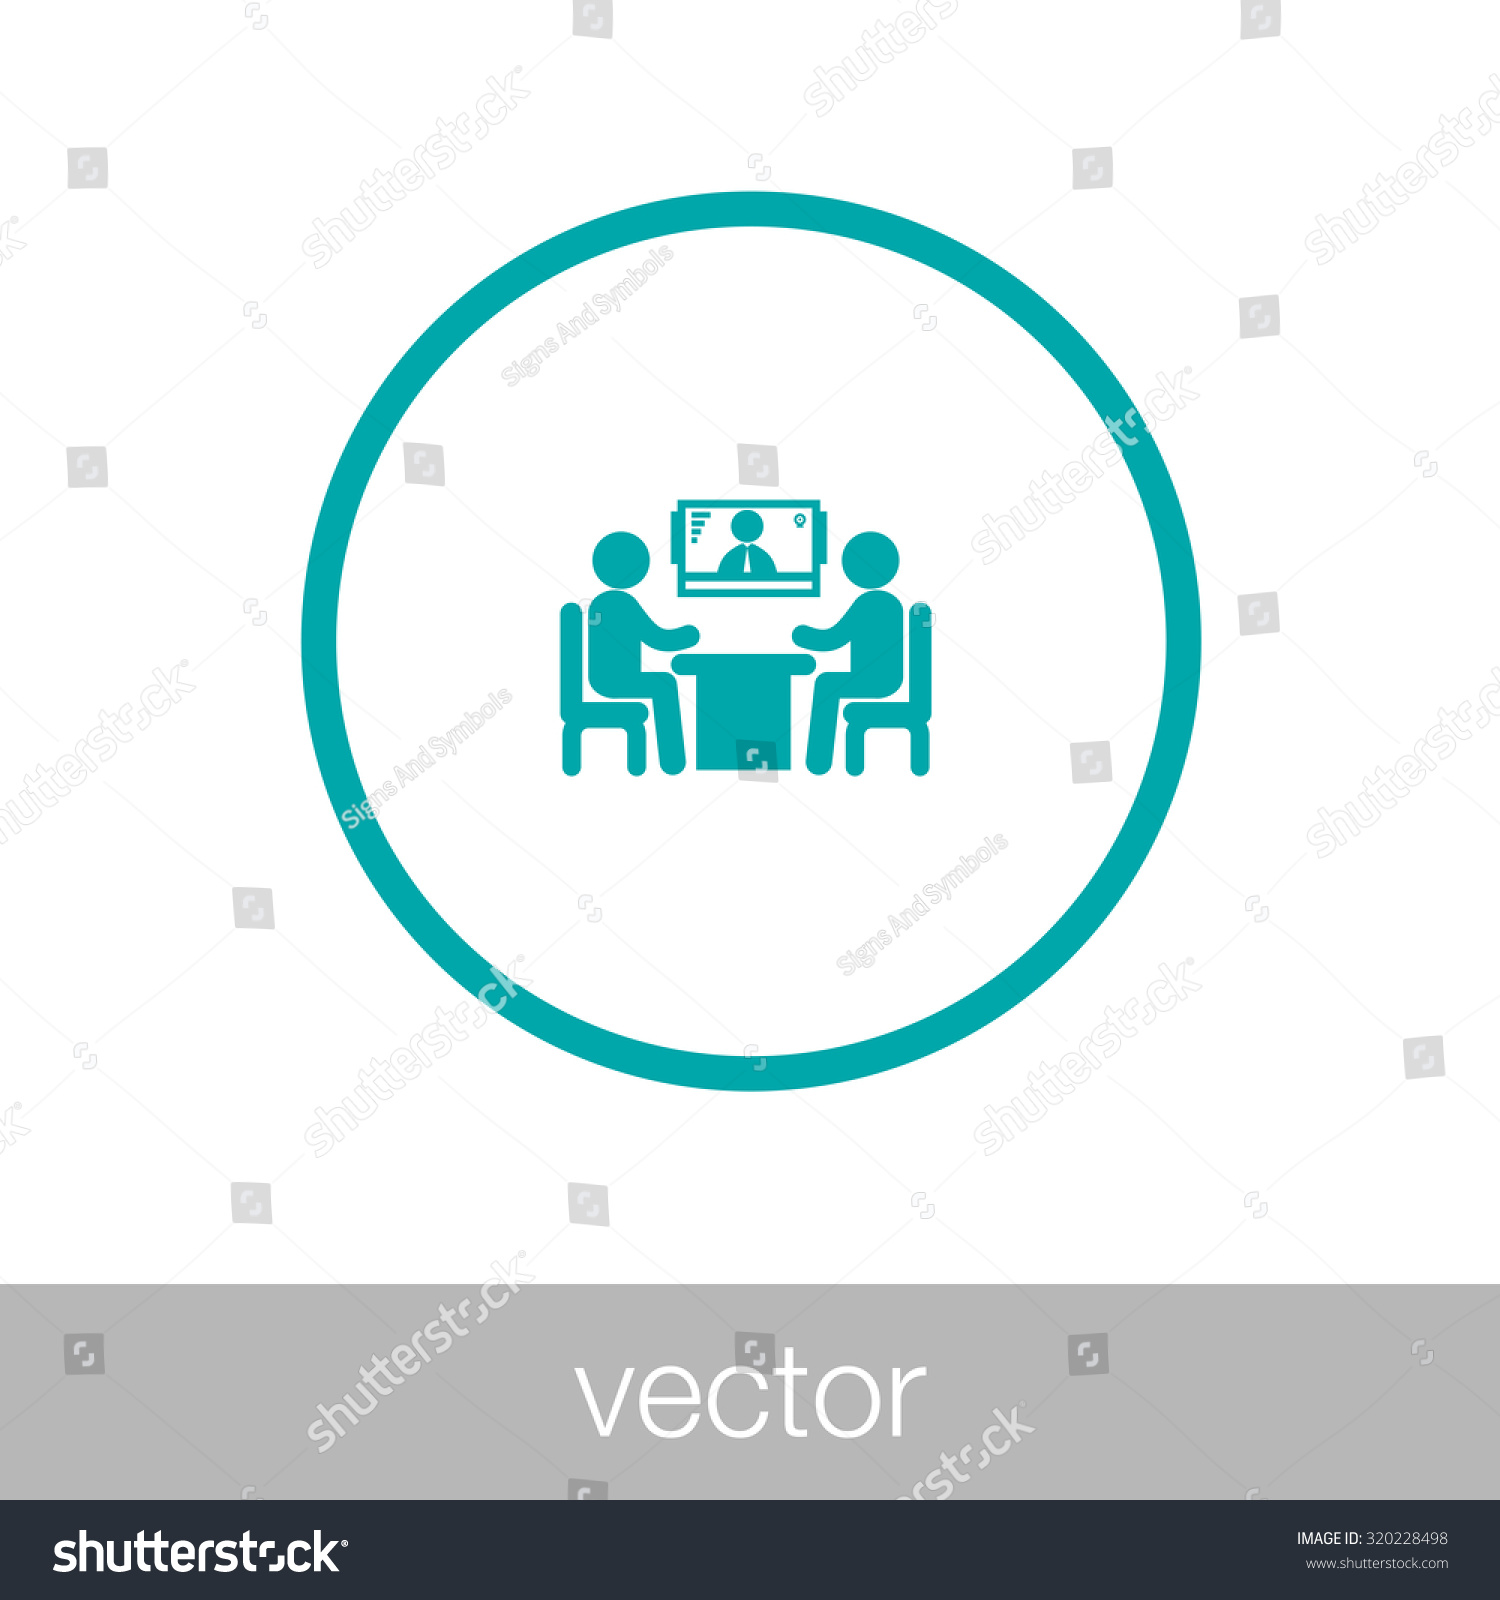 royalty online interview video conference 320228498 online interview video conference online meeting two human figures sitting around the table talking a human figure in the screen at the